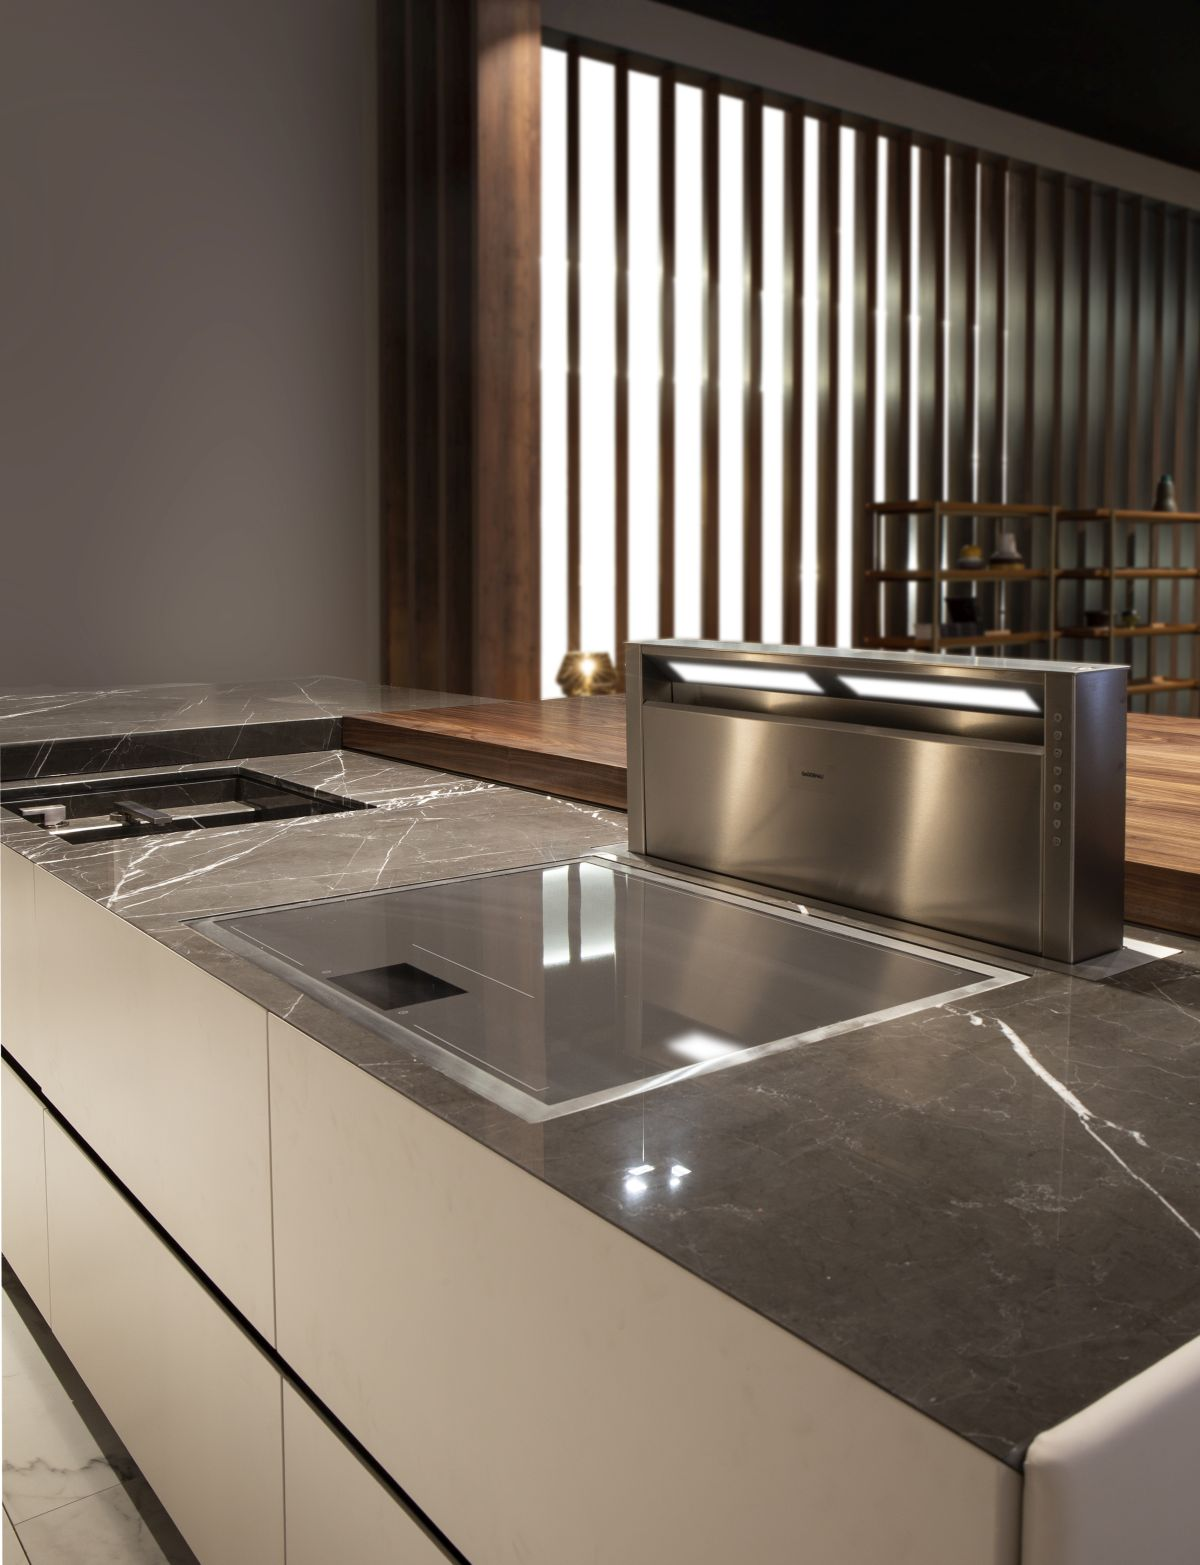 This luxury kitchen also includes a variety of other exquisite details and features designed to enrich the user experience